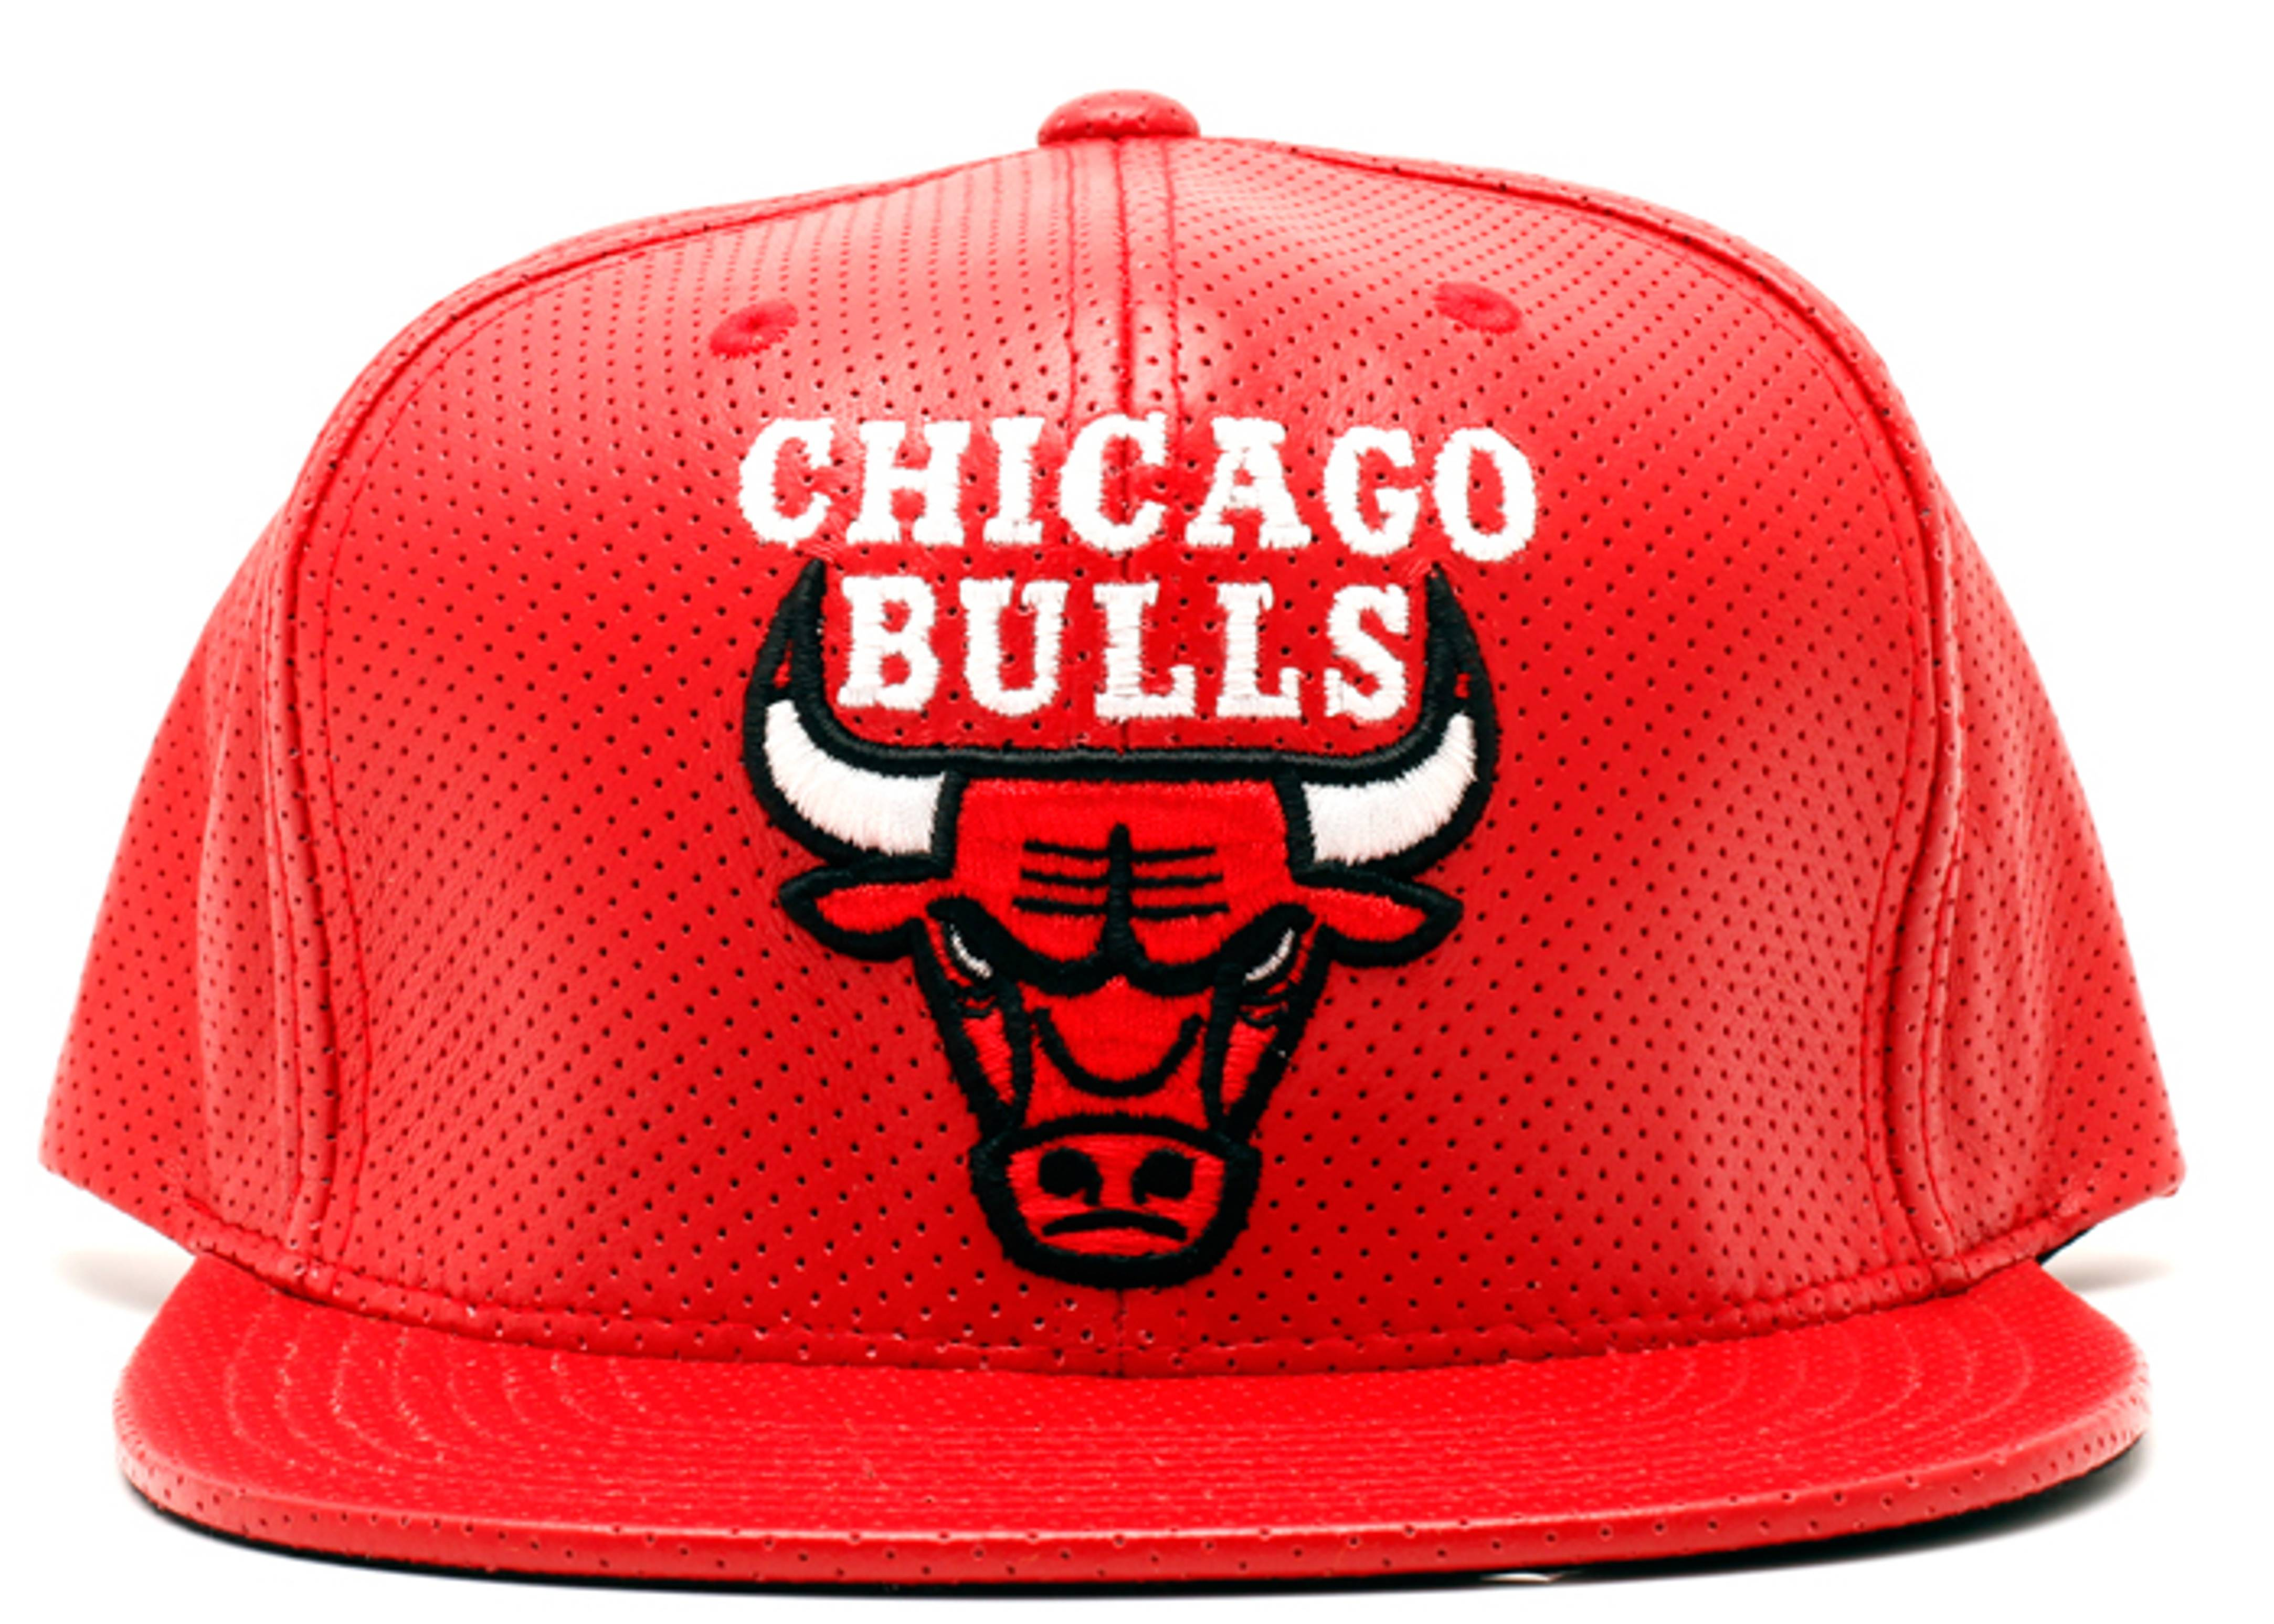 chicago bulls perforated leather snap-back